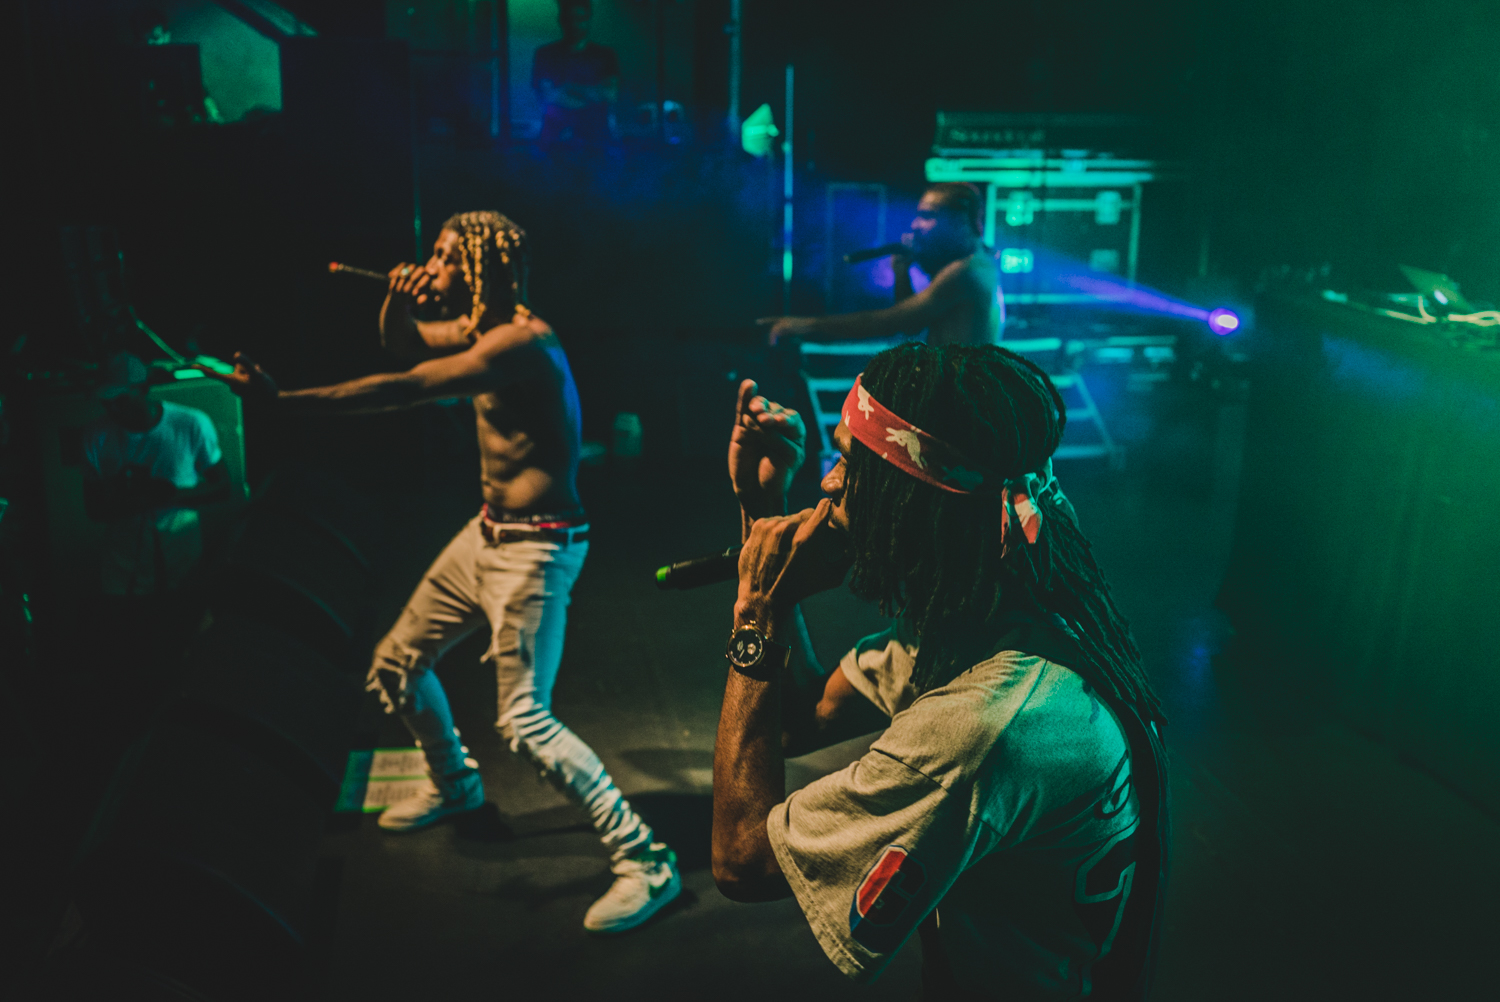 flatbush-zombies-by-pawel-ptak-21